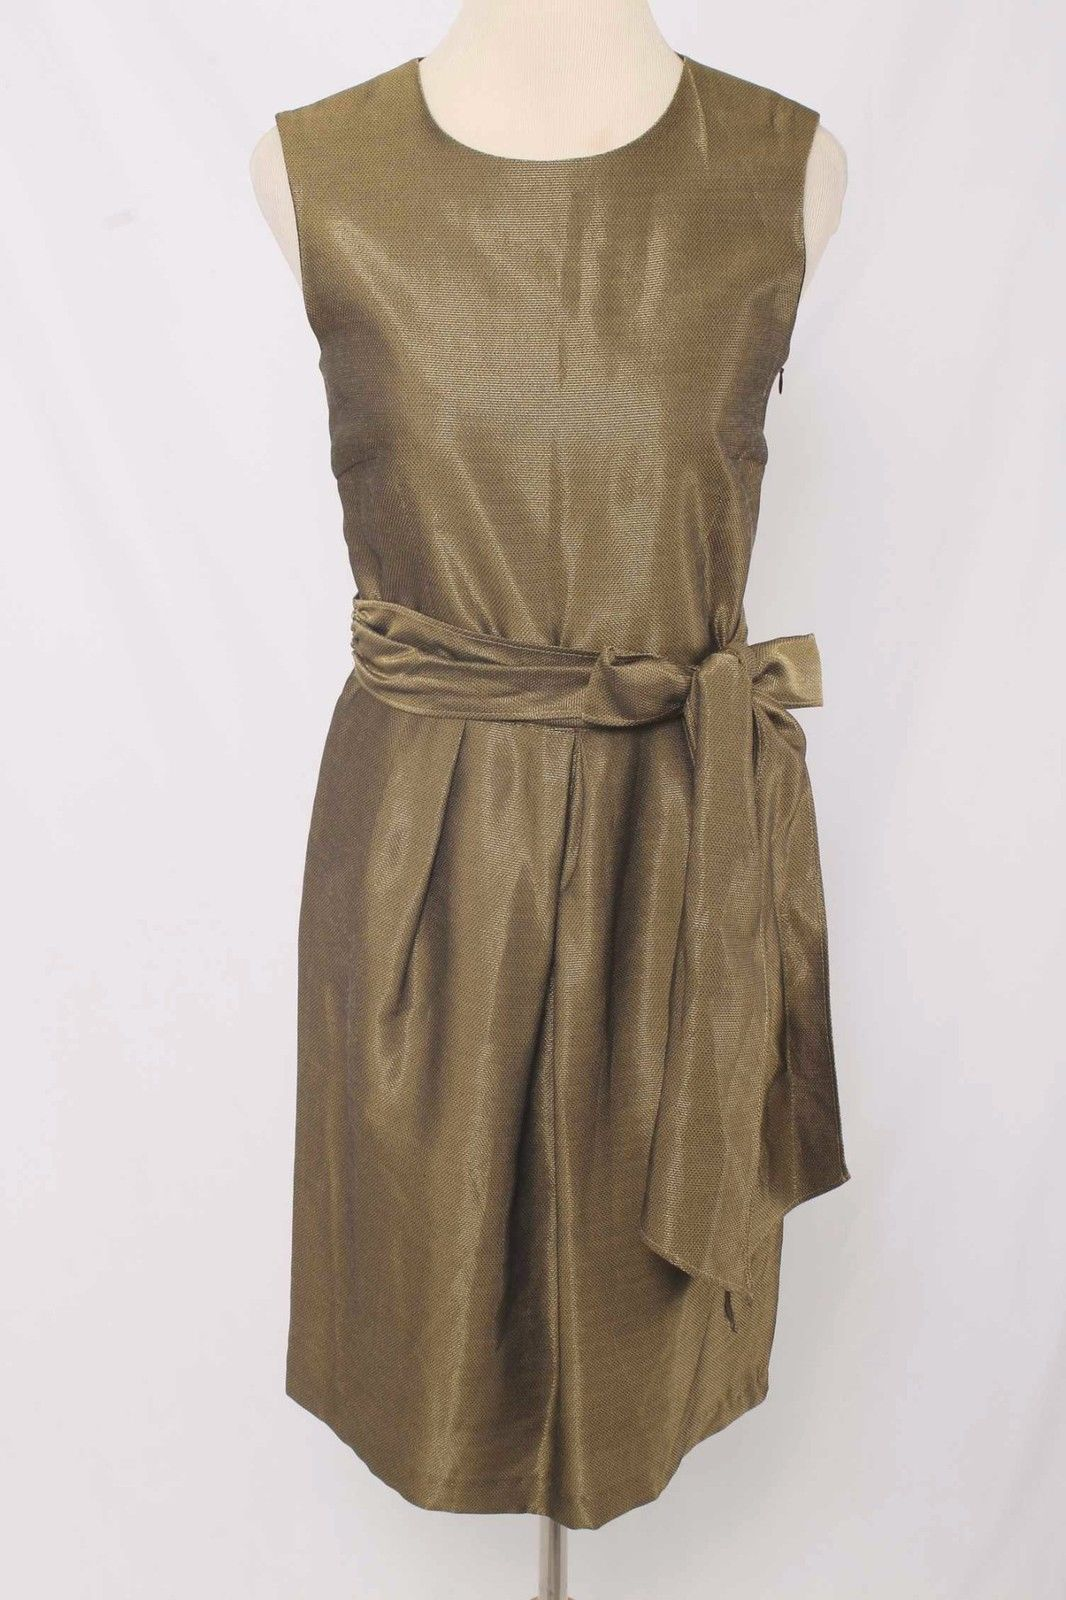 Zara-Size-M-Metallic-Gold-Belted-Pleated-Dress.jpg